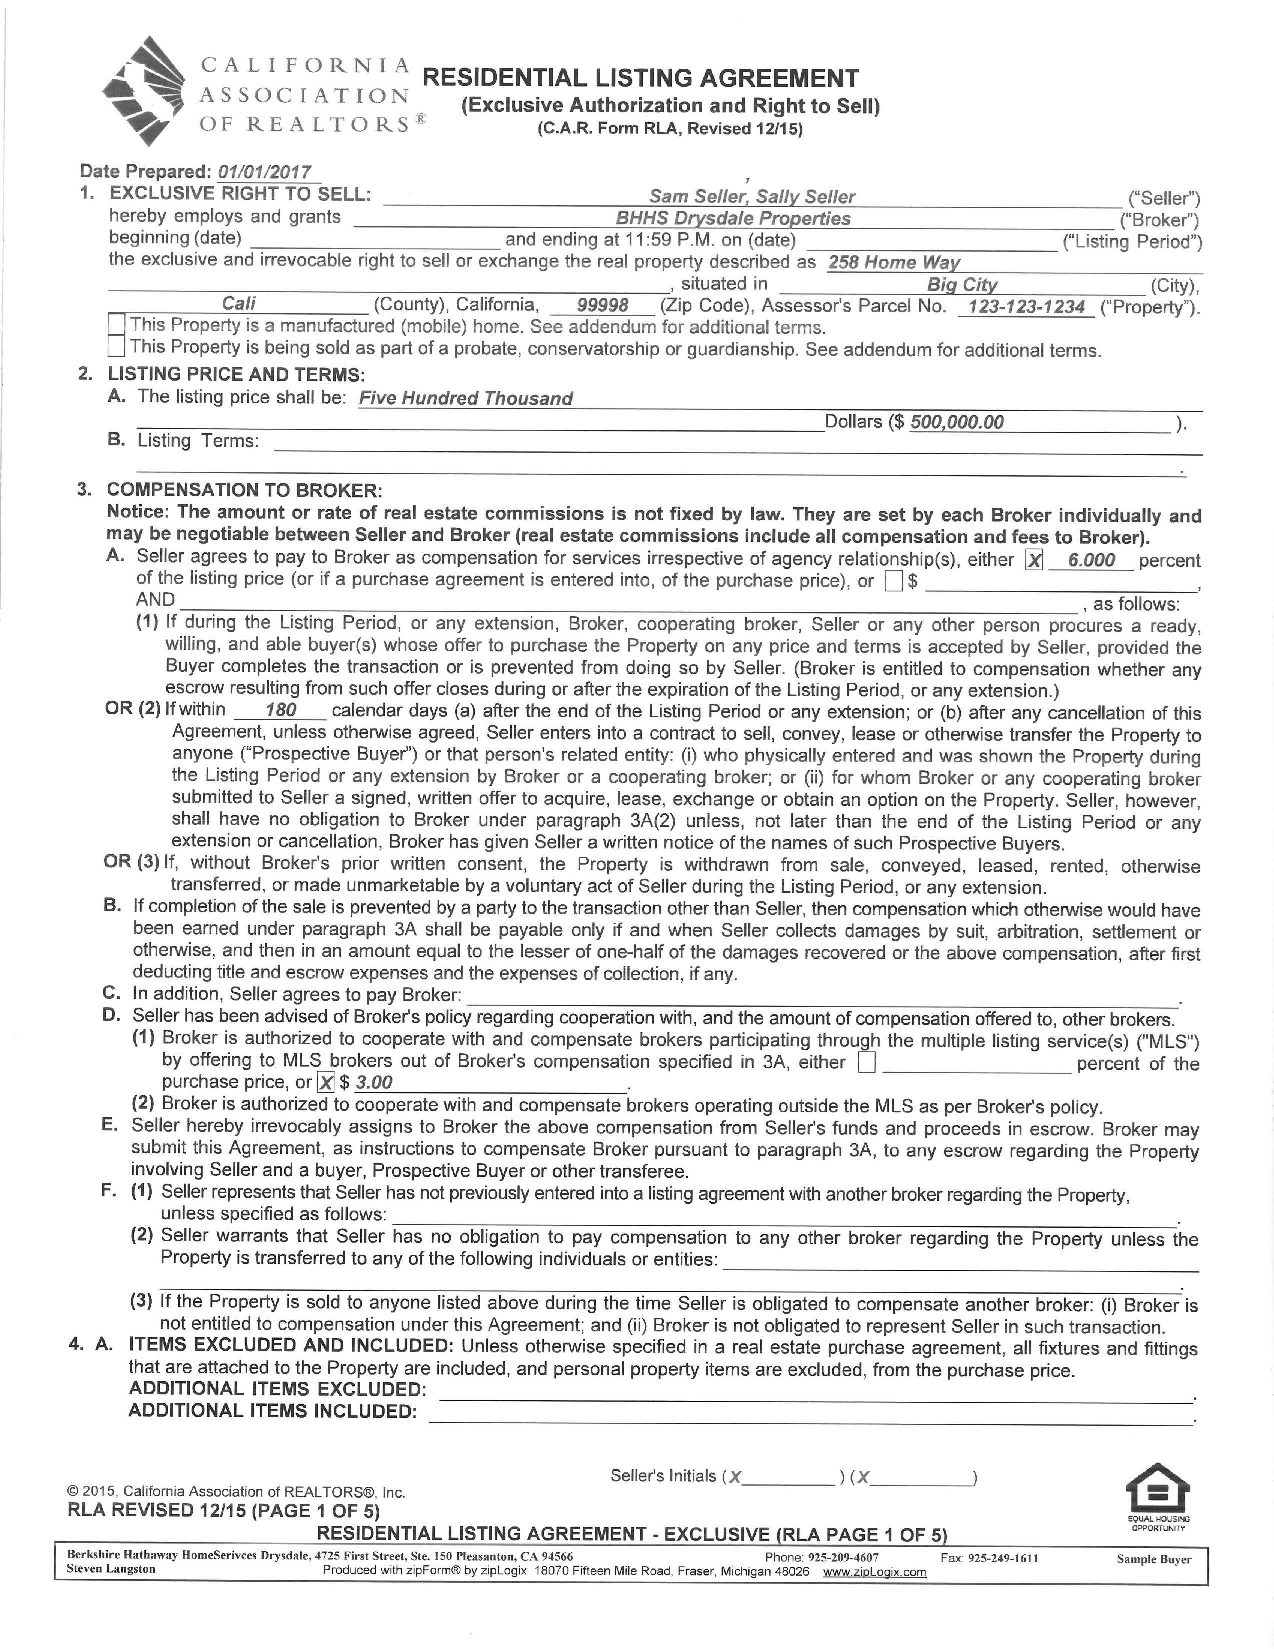 Sample of the Residential Listing Agreement